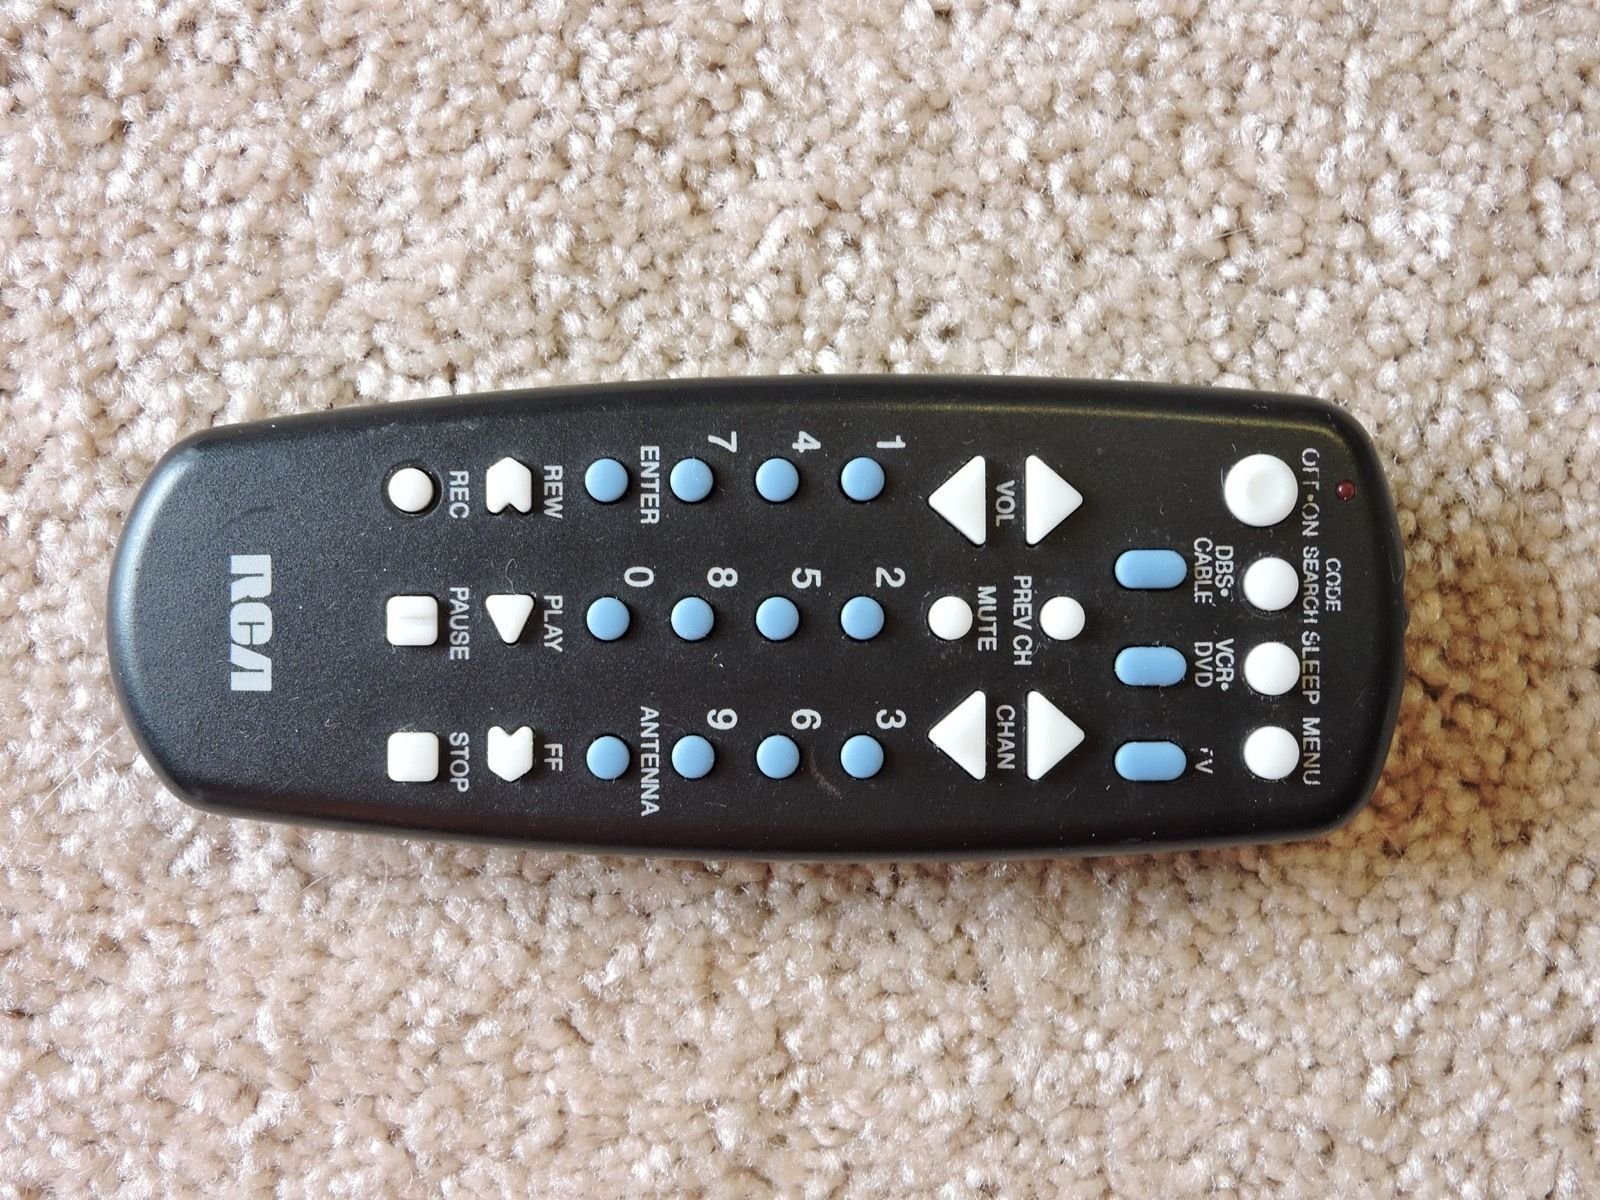 RCA RCU703SPN 3-Device Universal Remote w/ and 50 similar items